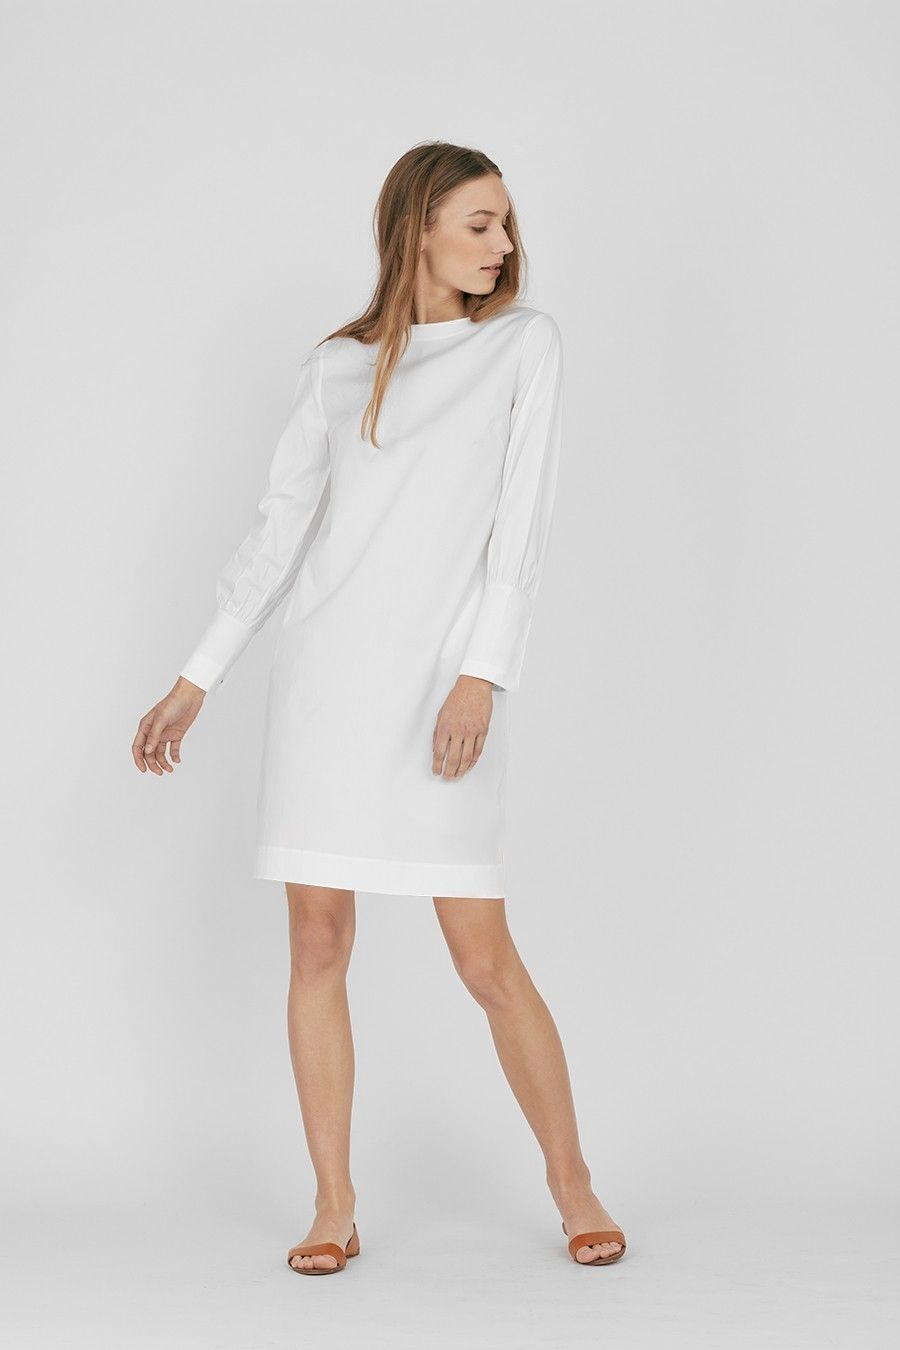 8d8ab2aa2d Our feminine boatneck dress is crafted from crisp Turkish cotton-poplin with  a subtle stretch for the perfect comfortable fit. This closet staple  expresses ...